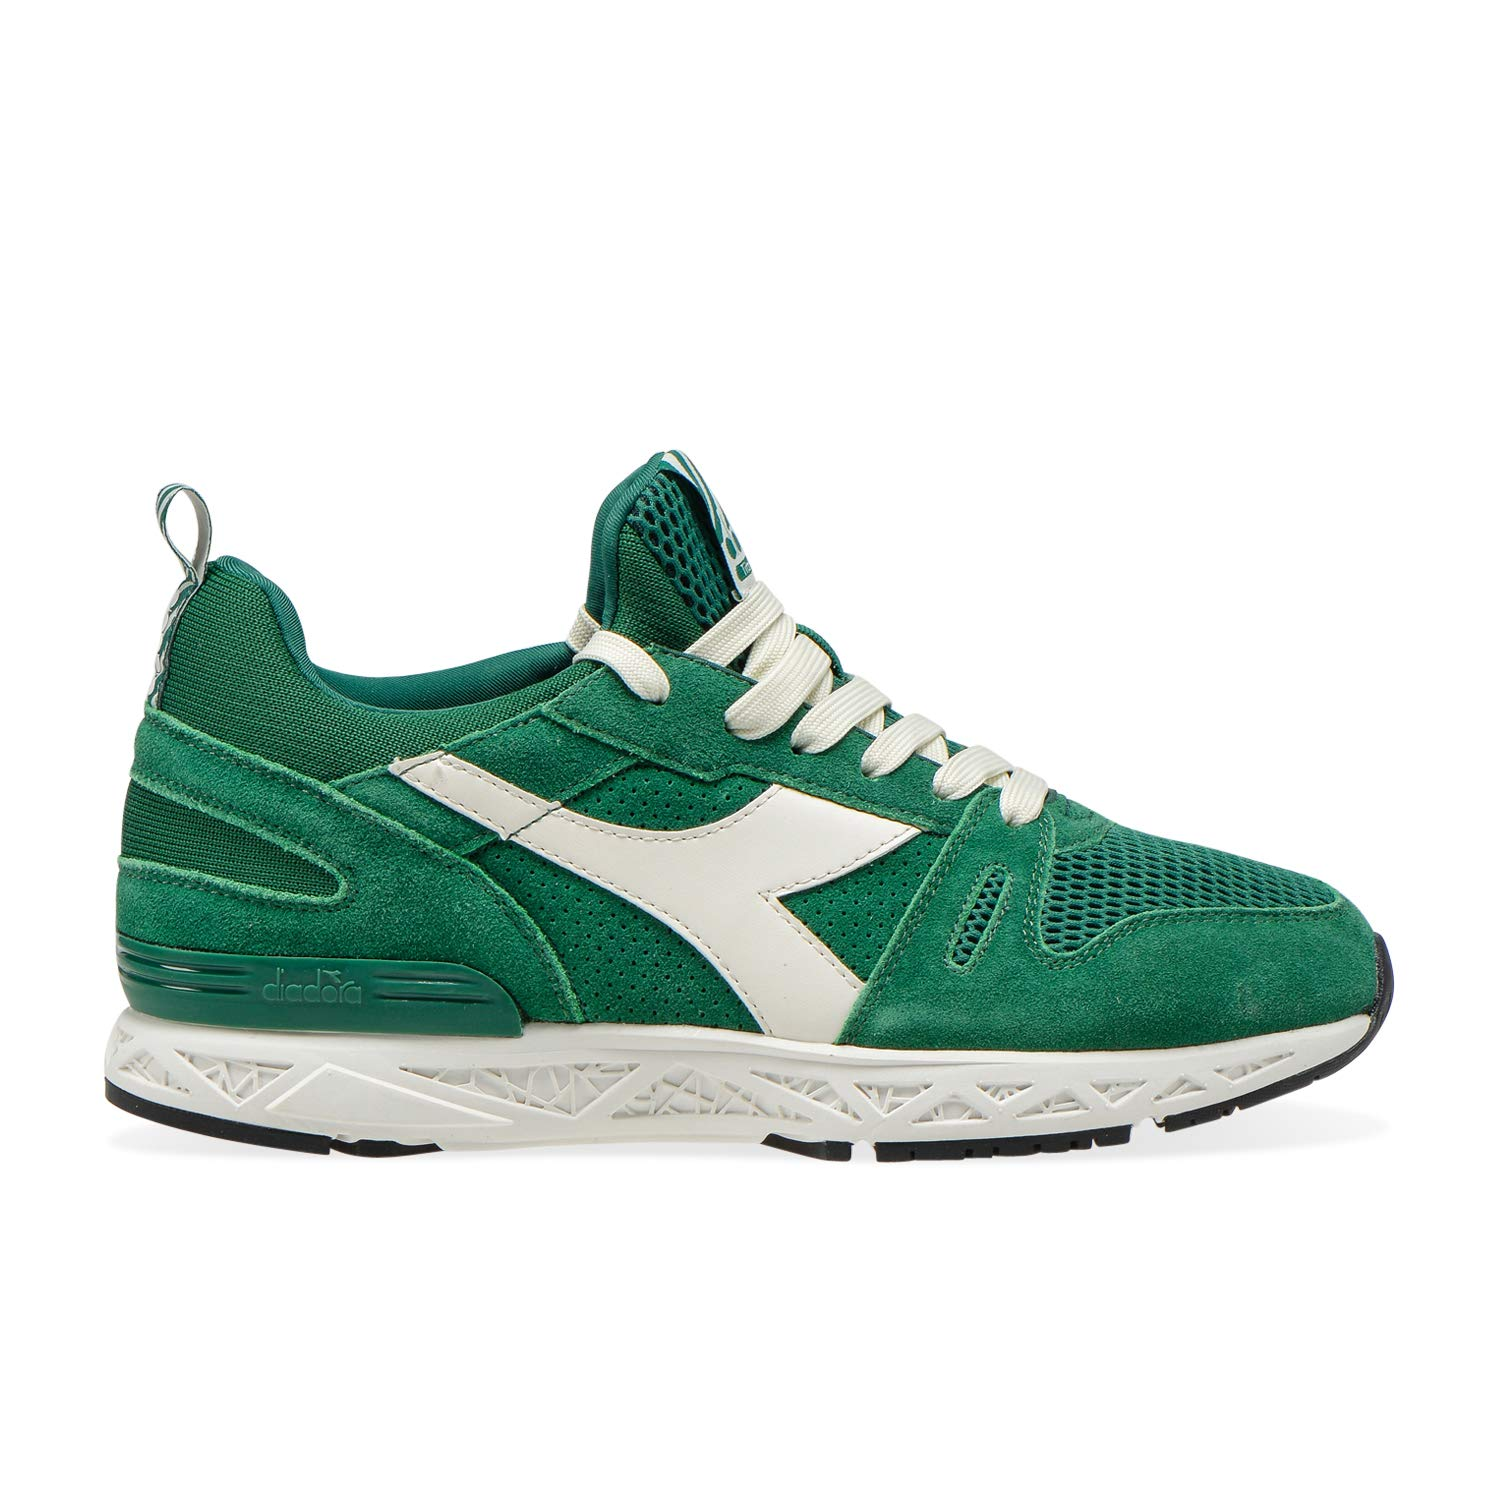 70264 - Verdant Green Diadora - Sneakers Titan Reborn BARRA for Man and Woman